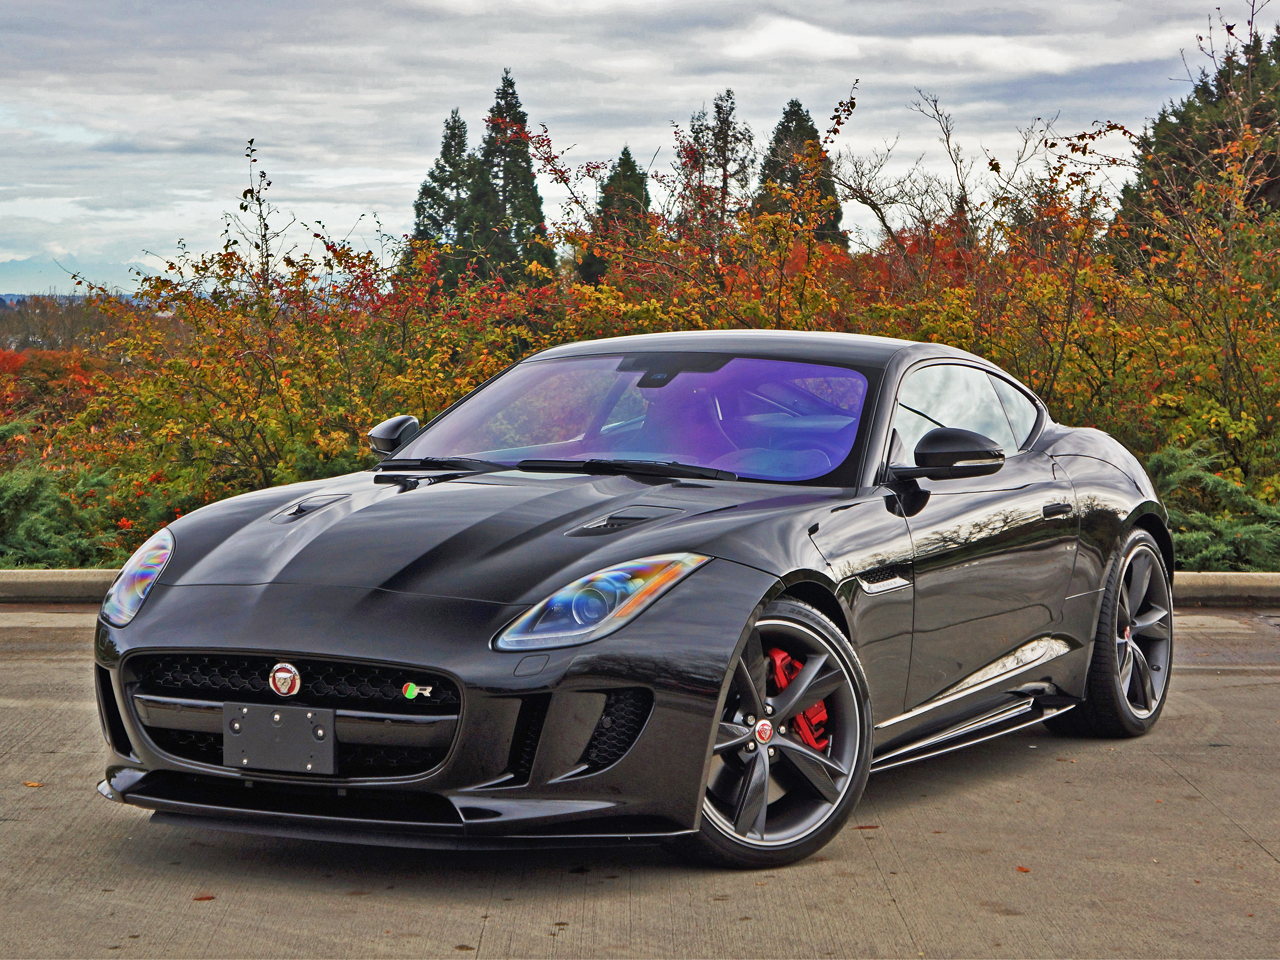 coupe r f type review gtspirit vs jaguar